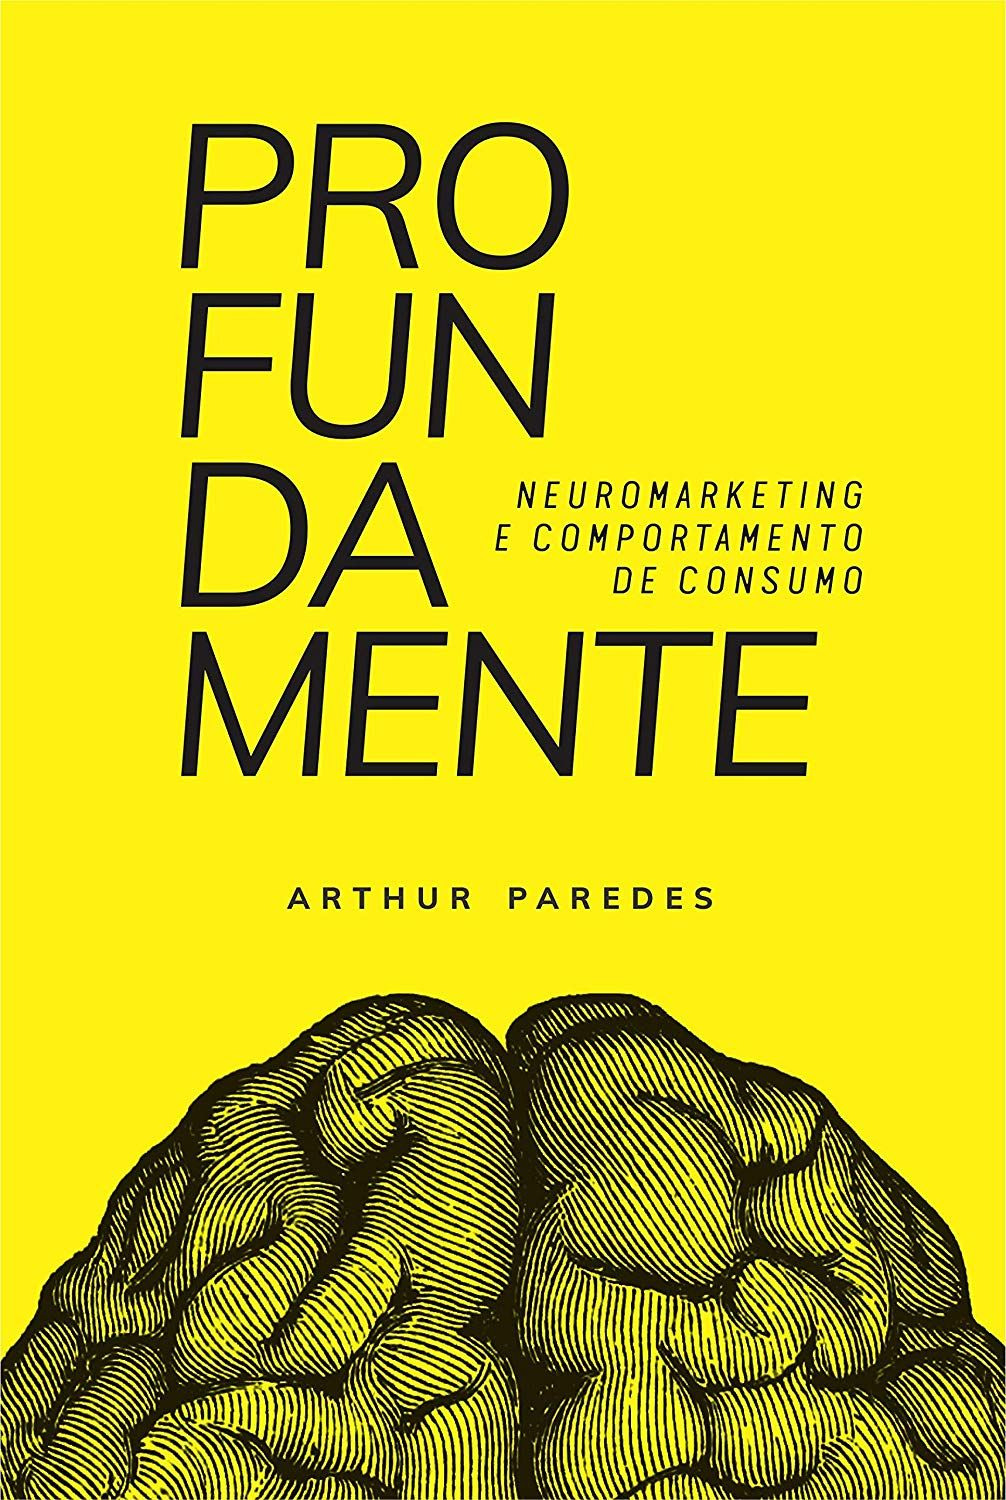 Profundamente Neuromarketing E Comportamento De Consumo Ebook